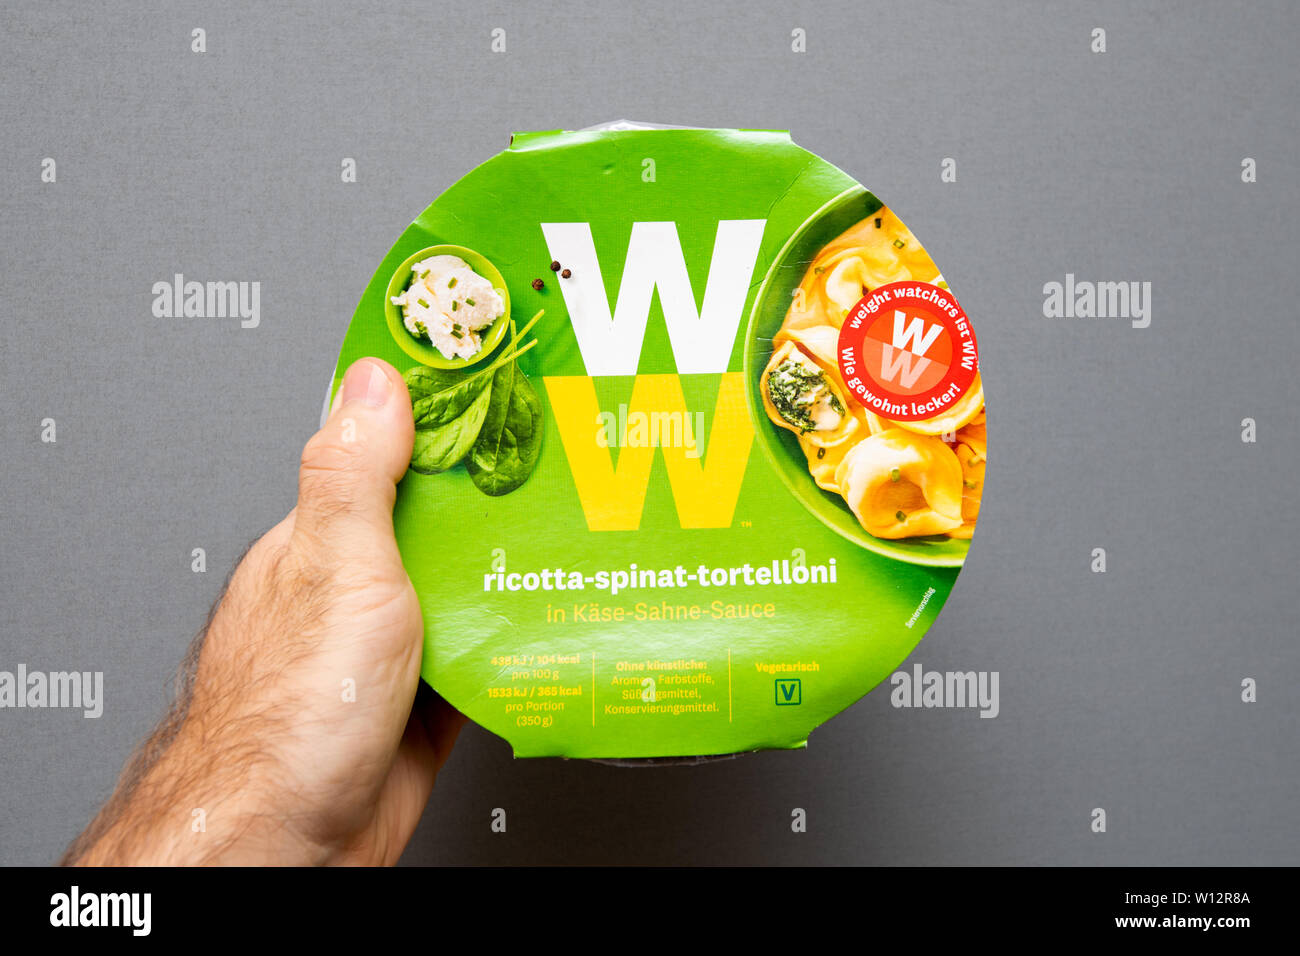 Paris, France - May 19, 2019: Man hand holding Weight Watchers Ricotta Spinach and Tortellini with cheese sauce - isolated gray background - Stock Image